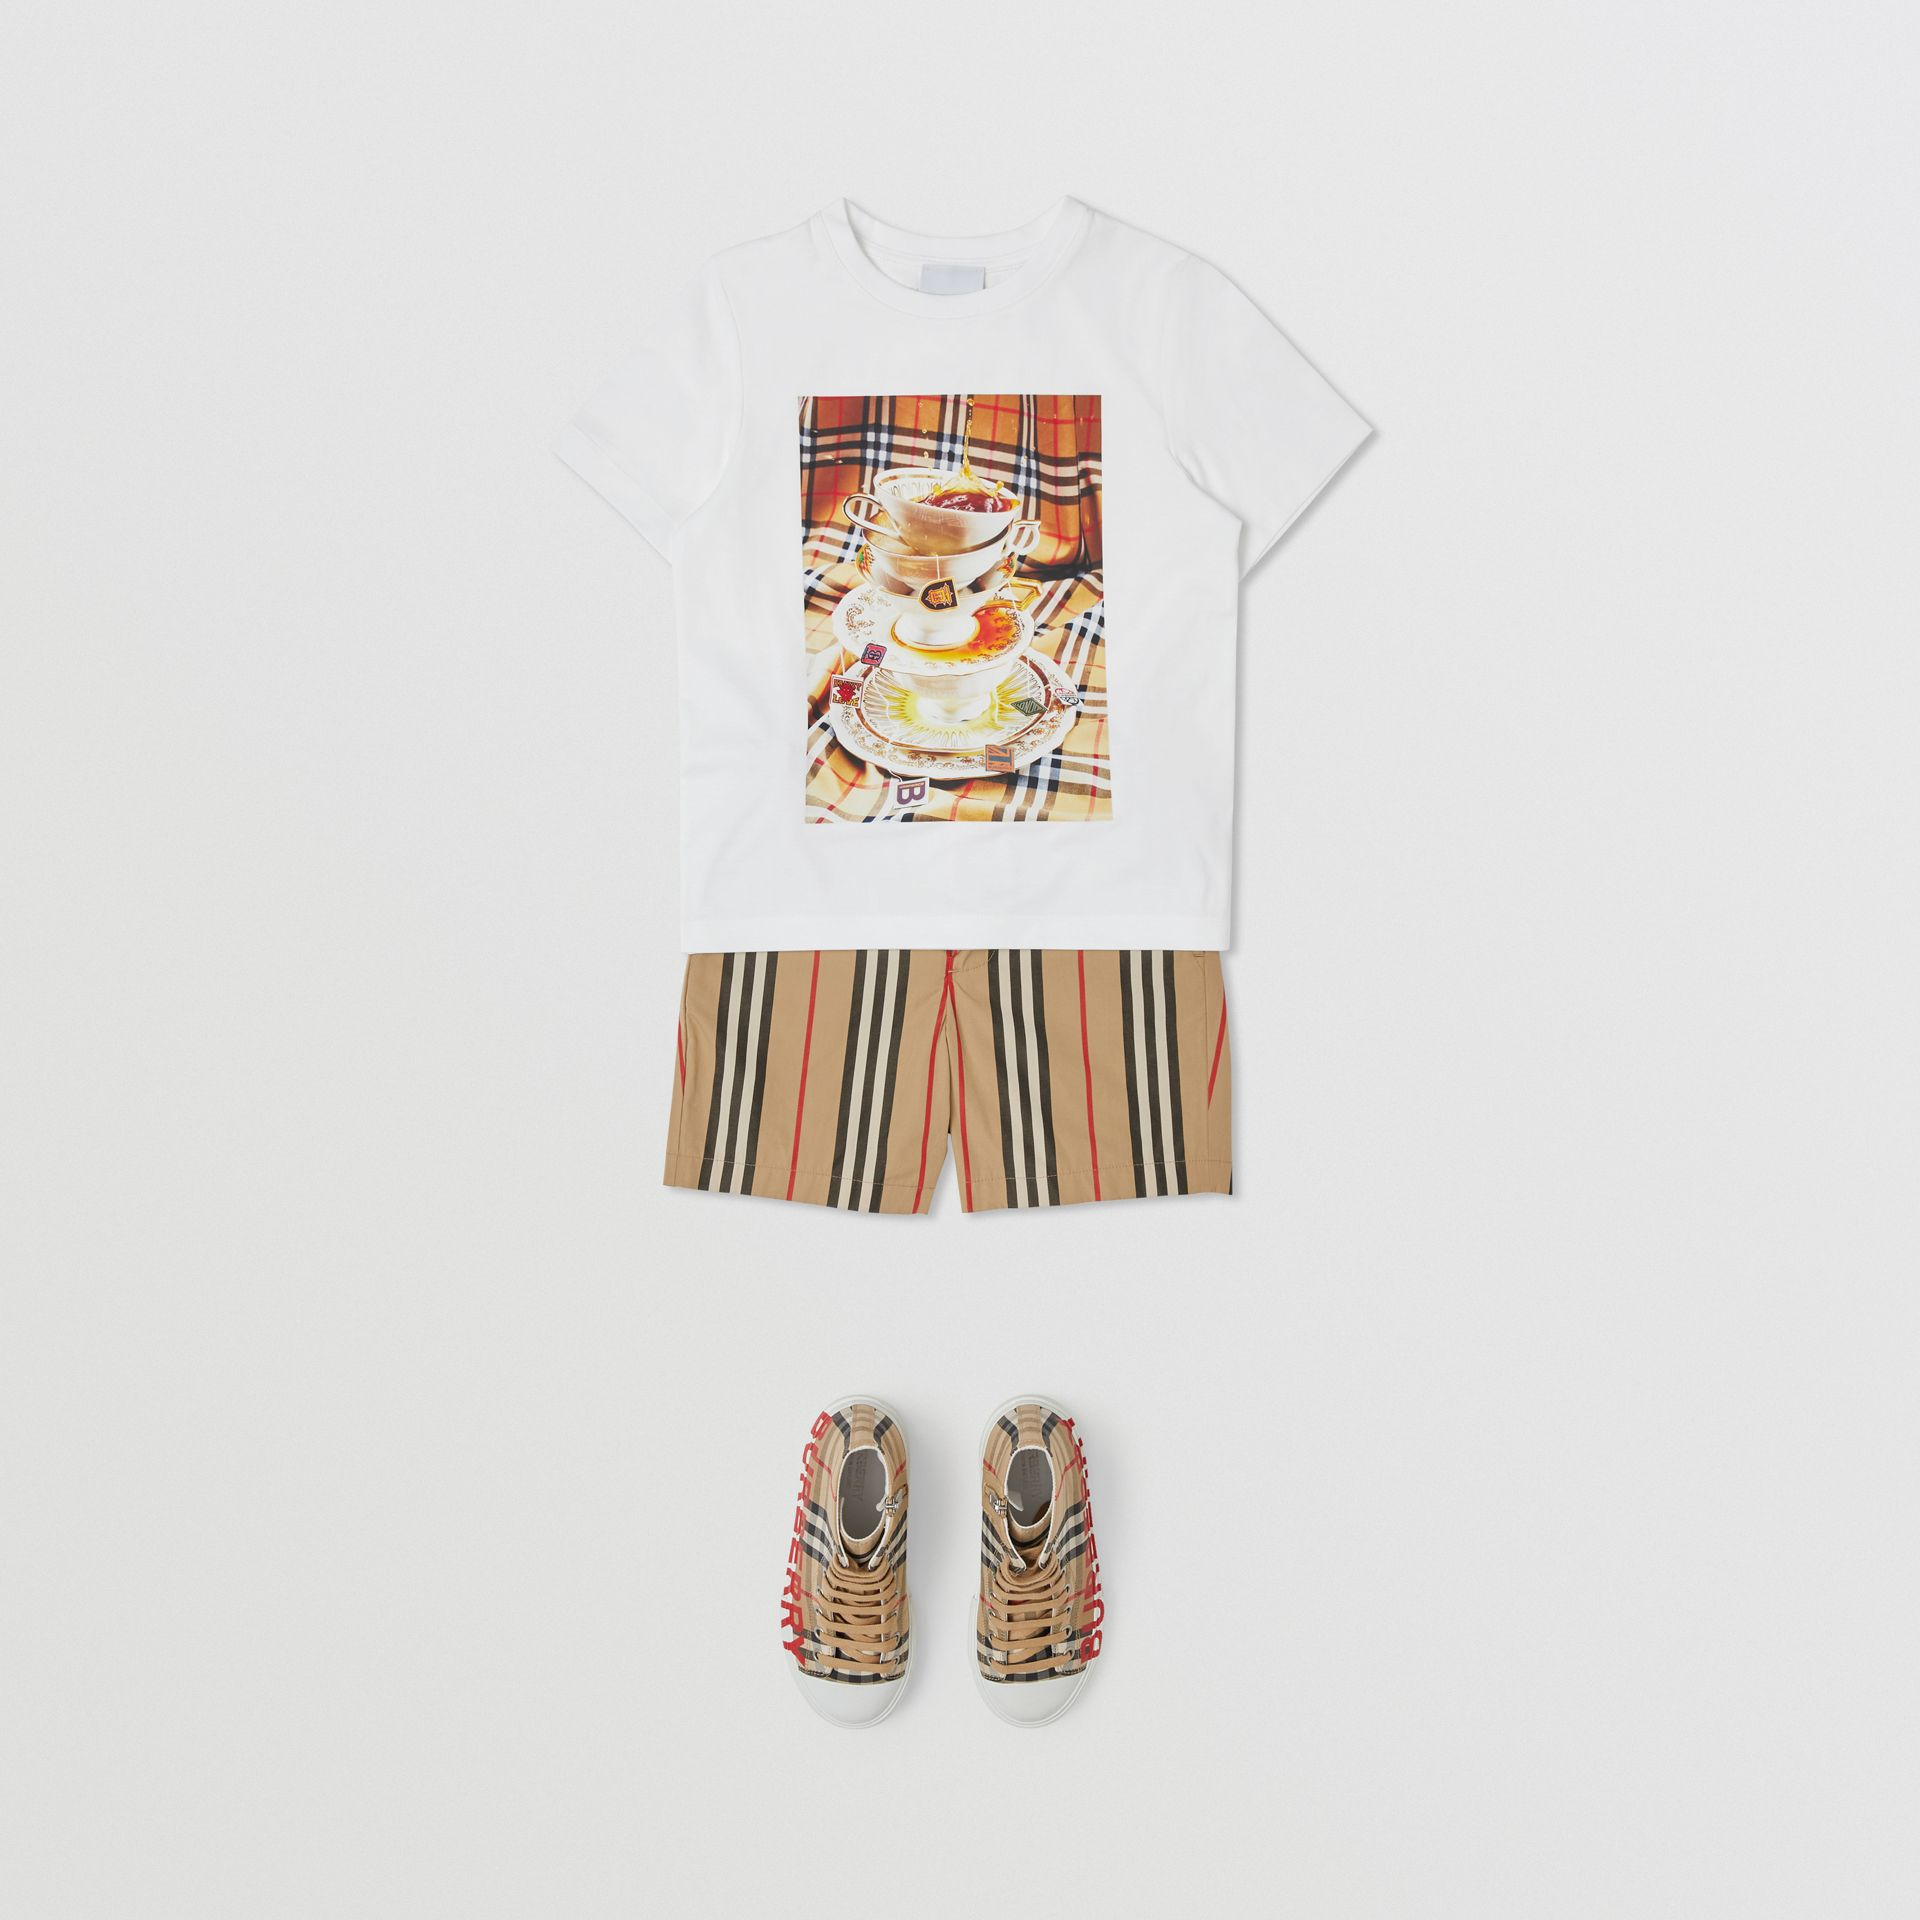 Teacup Print T-shirt in Multicolour | Burberry Canada - gallery image 3